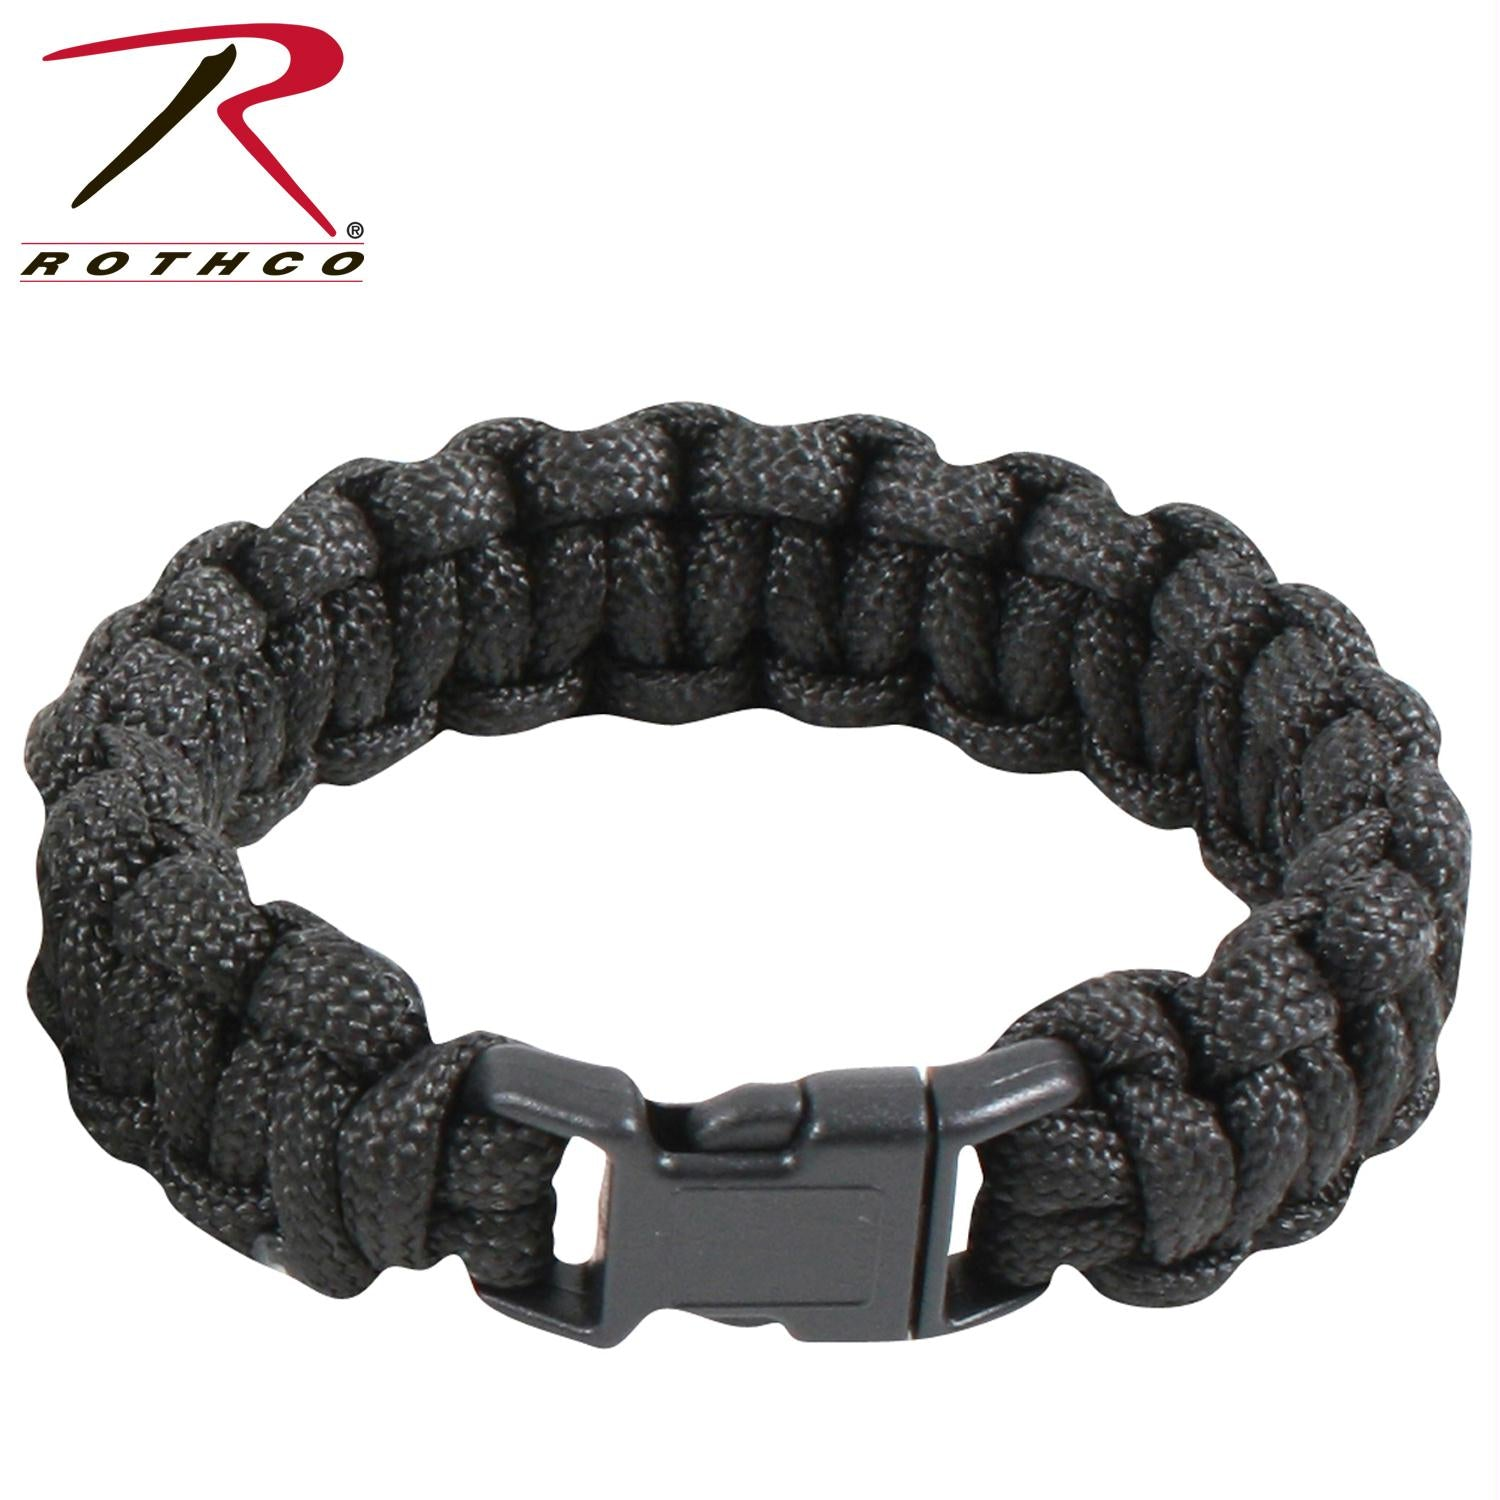 Rothco Solid Color Paracord Bracelet - Black / 10 Inches